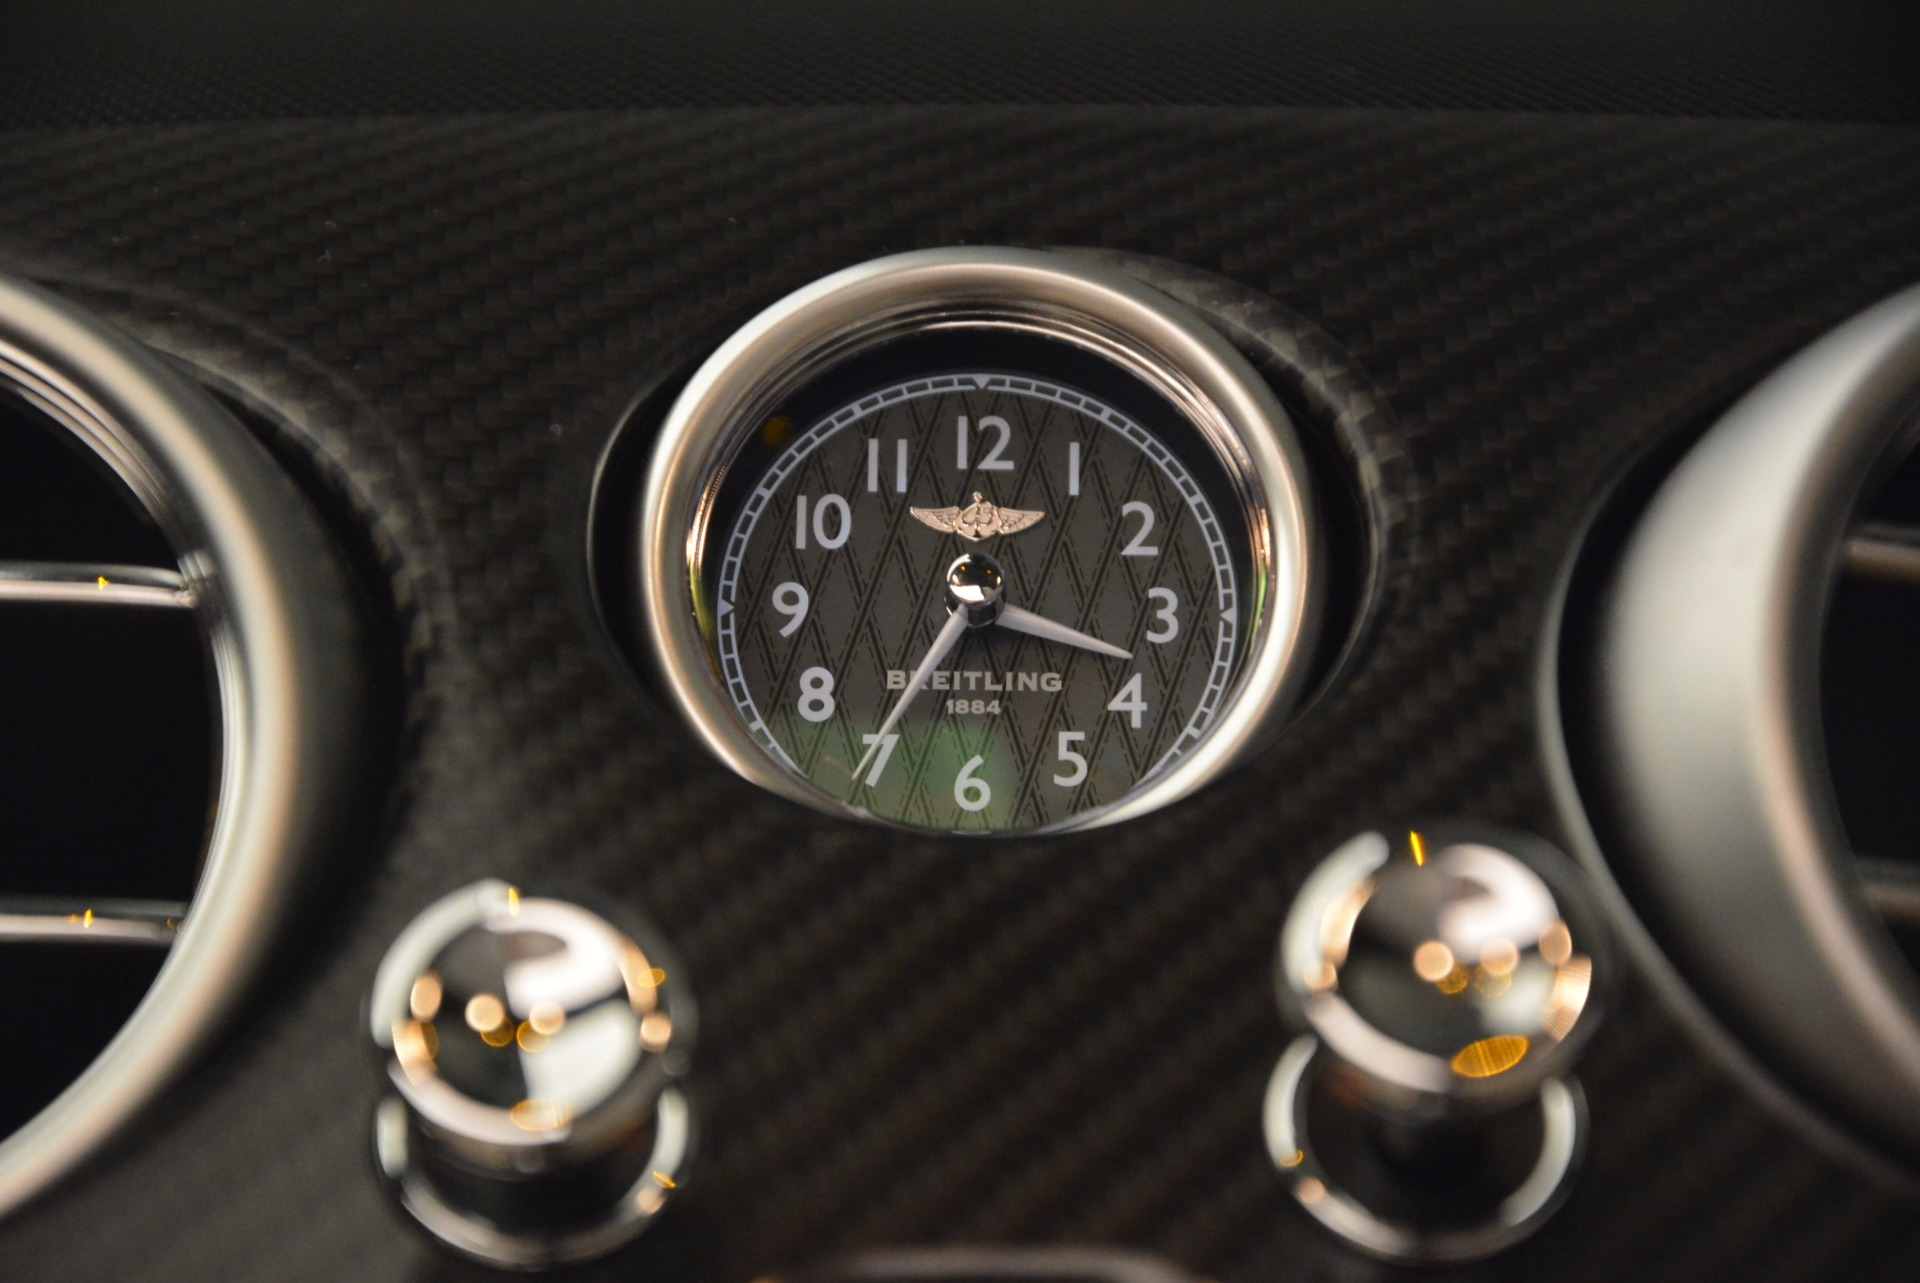 Used 2013 Bentley Continental GT V8 Le Mans Edition, 1 of 48 For Sale In Greenwich, CT 1288_p40